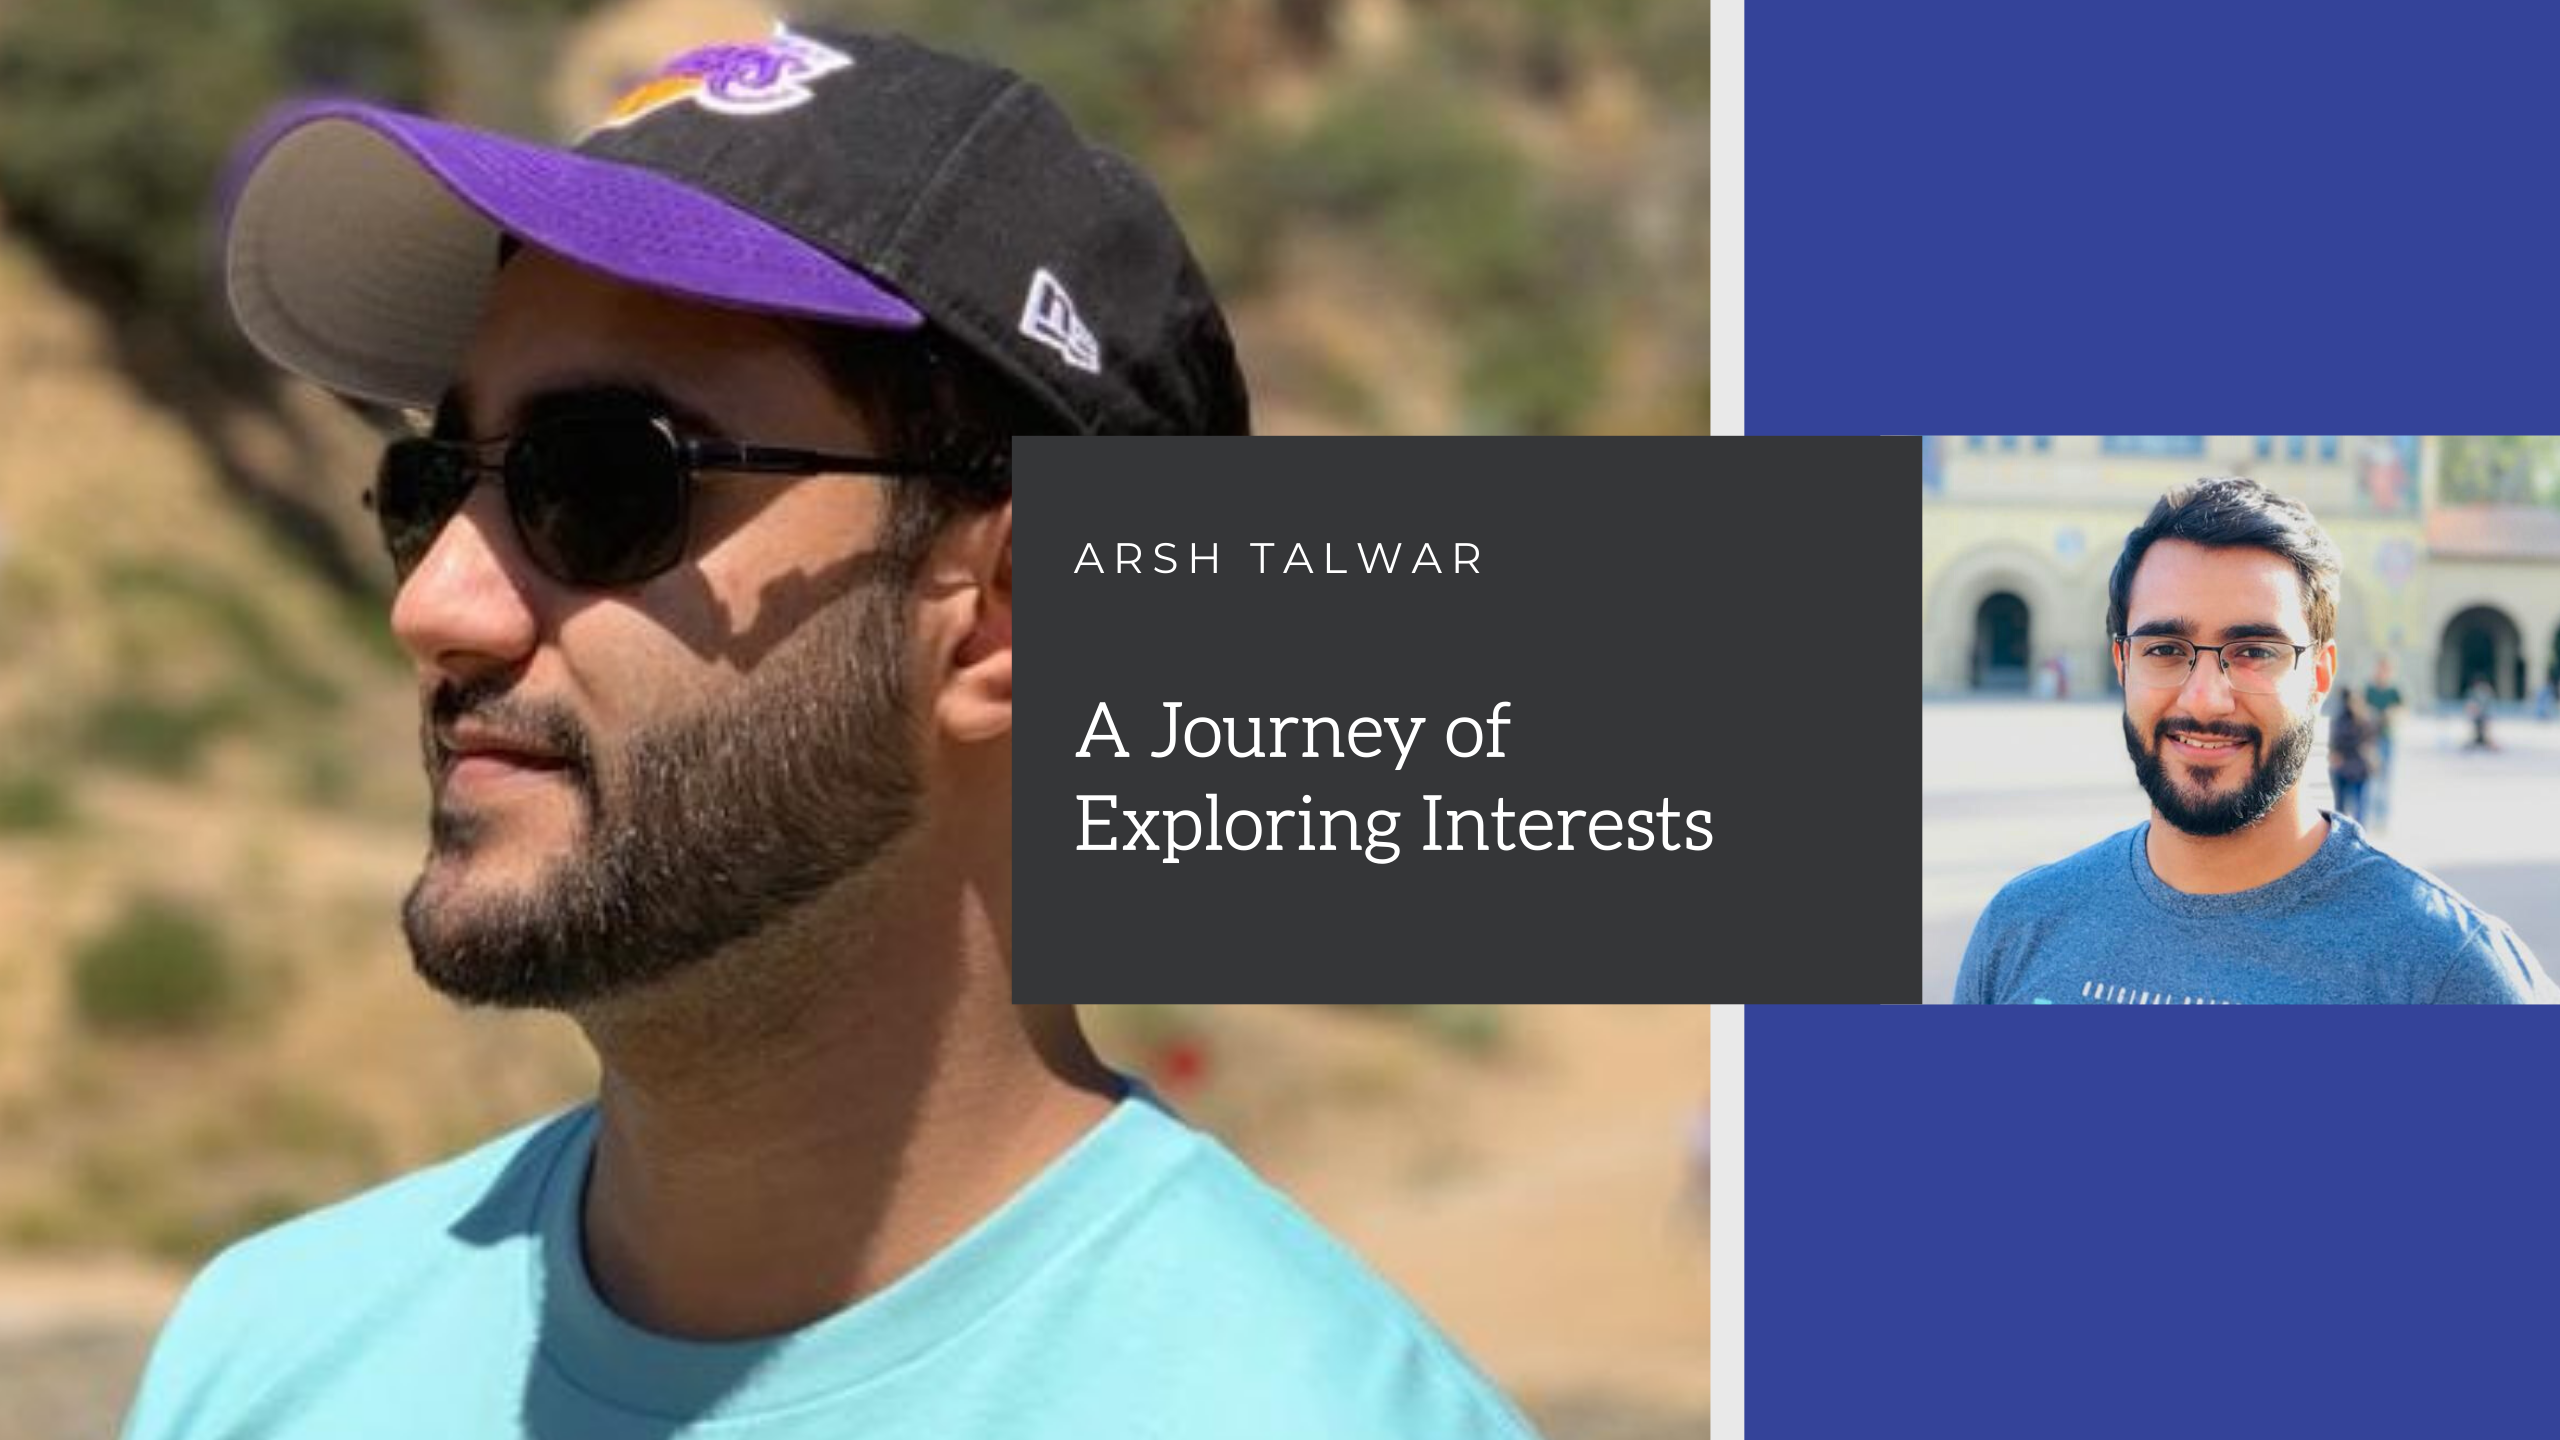 A Journey of Exploring Interests